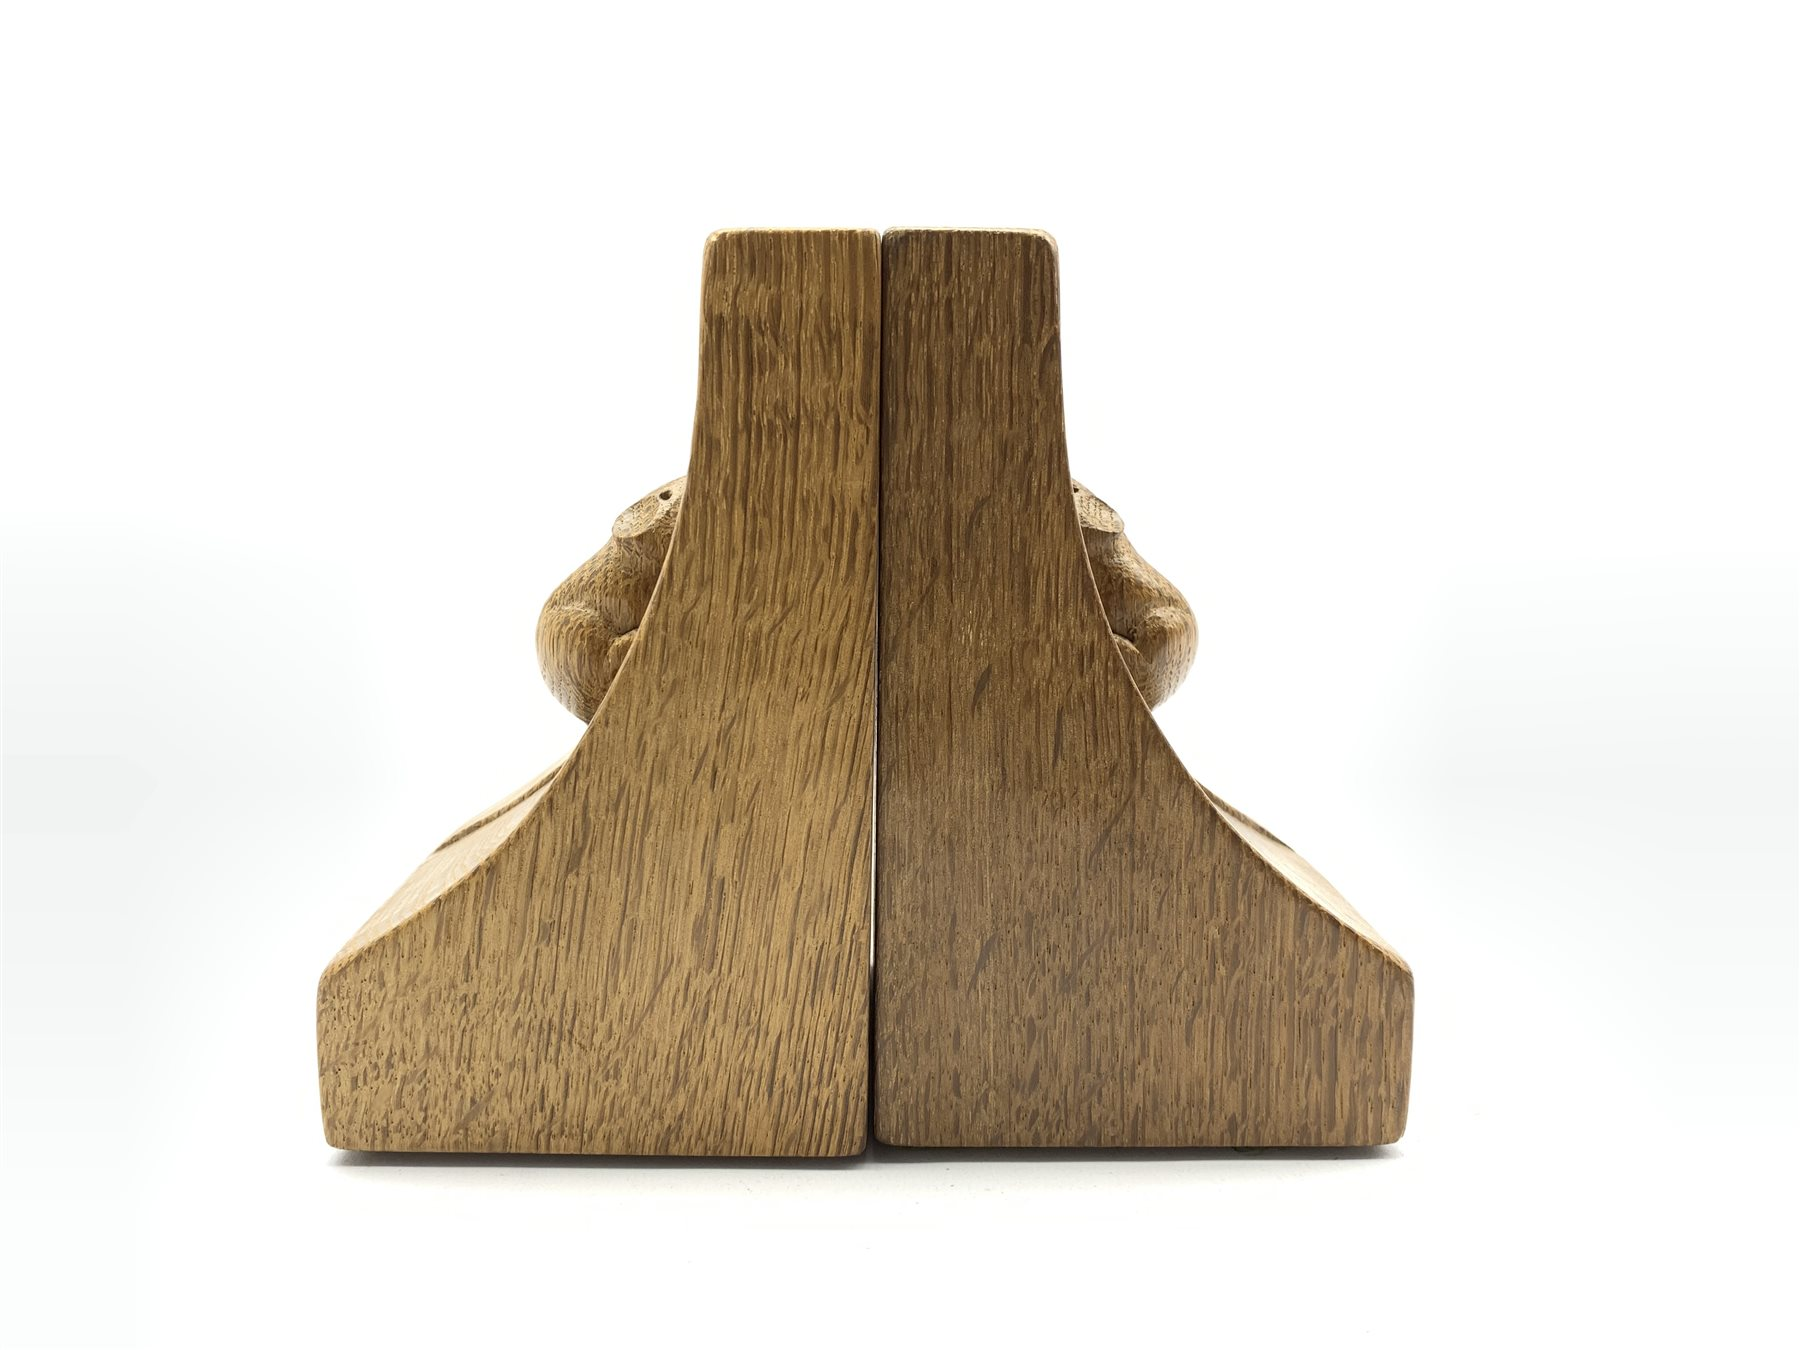 Pair of Thompson of Kilburn 'Mouseman' adzed oak bookends with carved mouse signature to each end H1 - Image 2 of 7